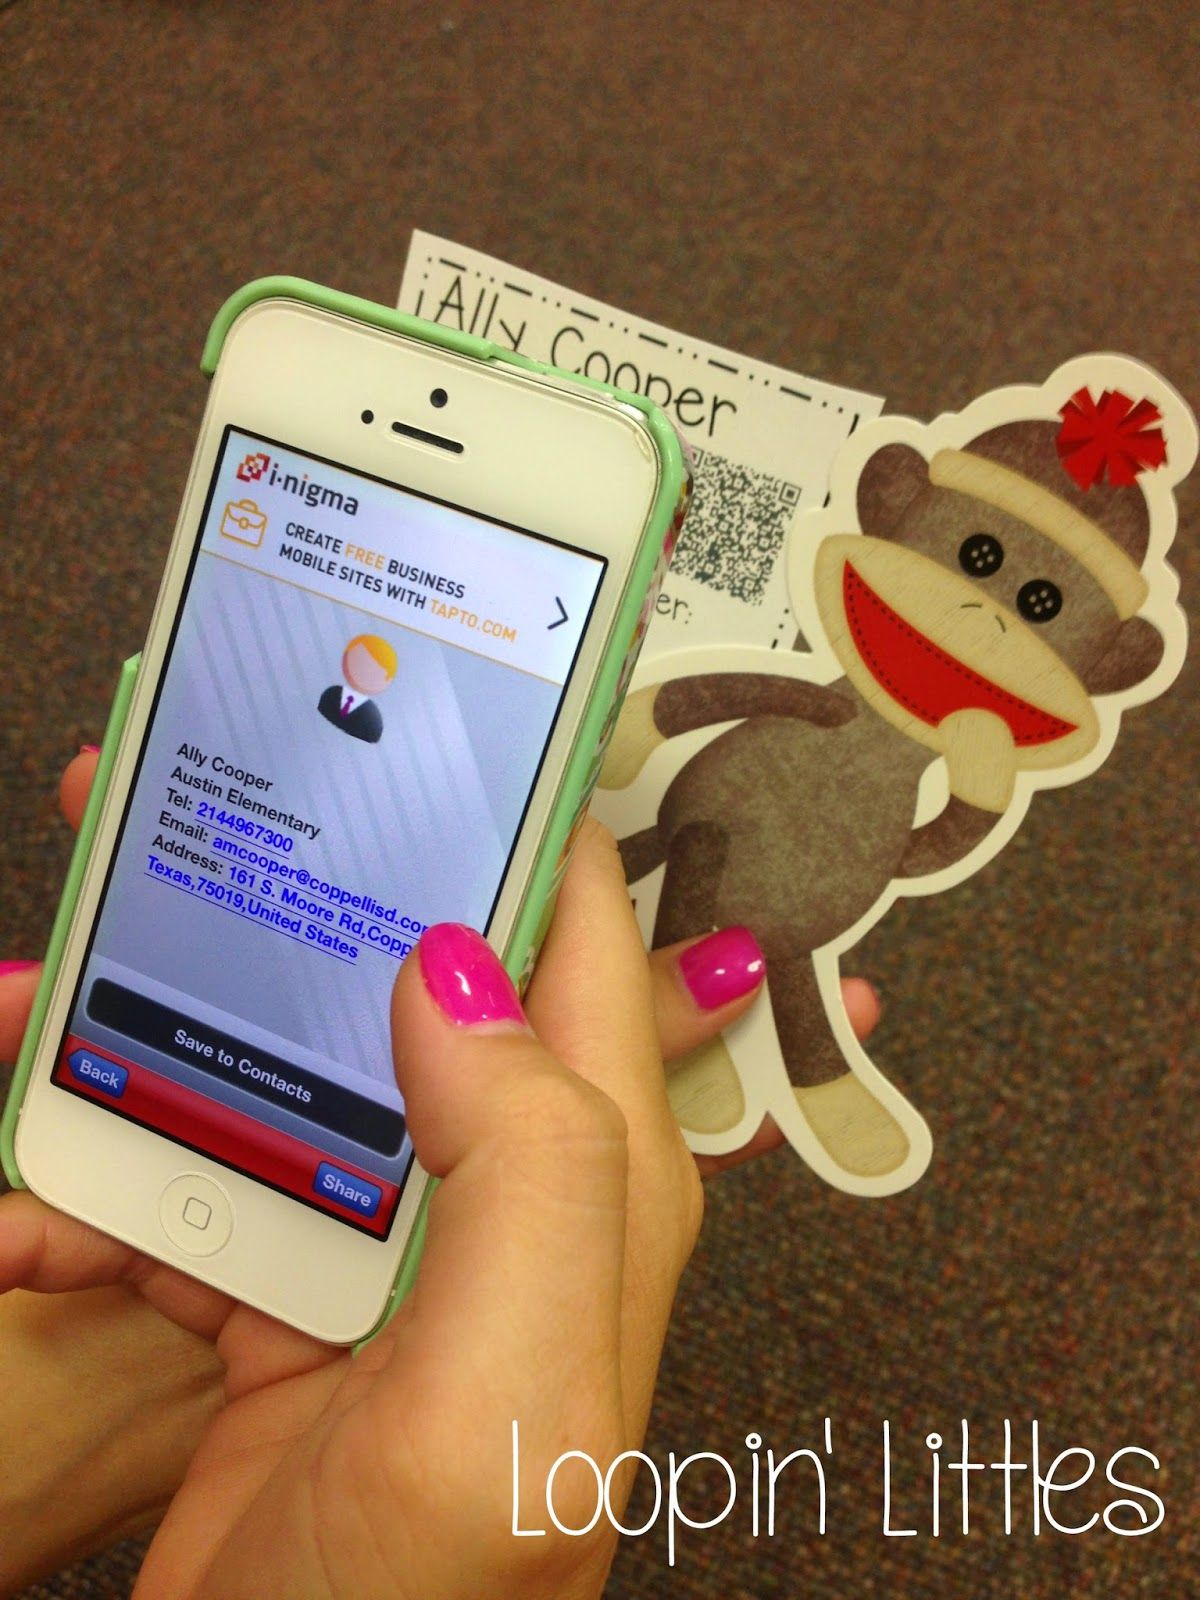 Loopin' Littles Create a QR Code on your business card